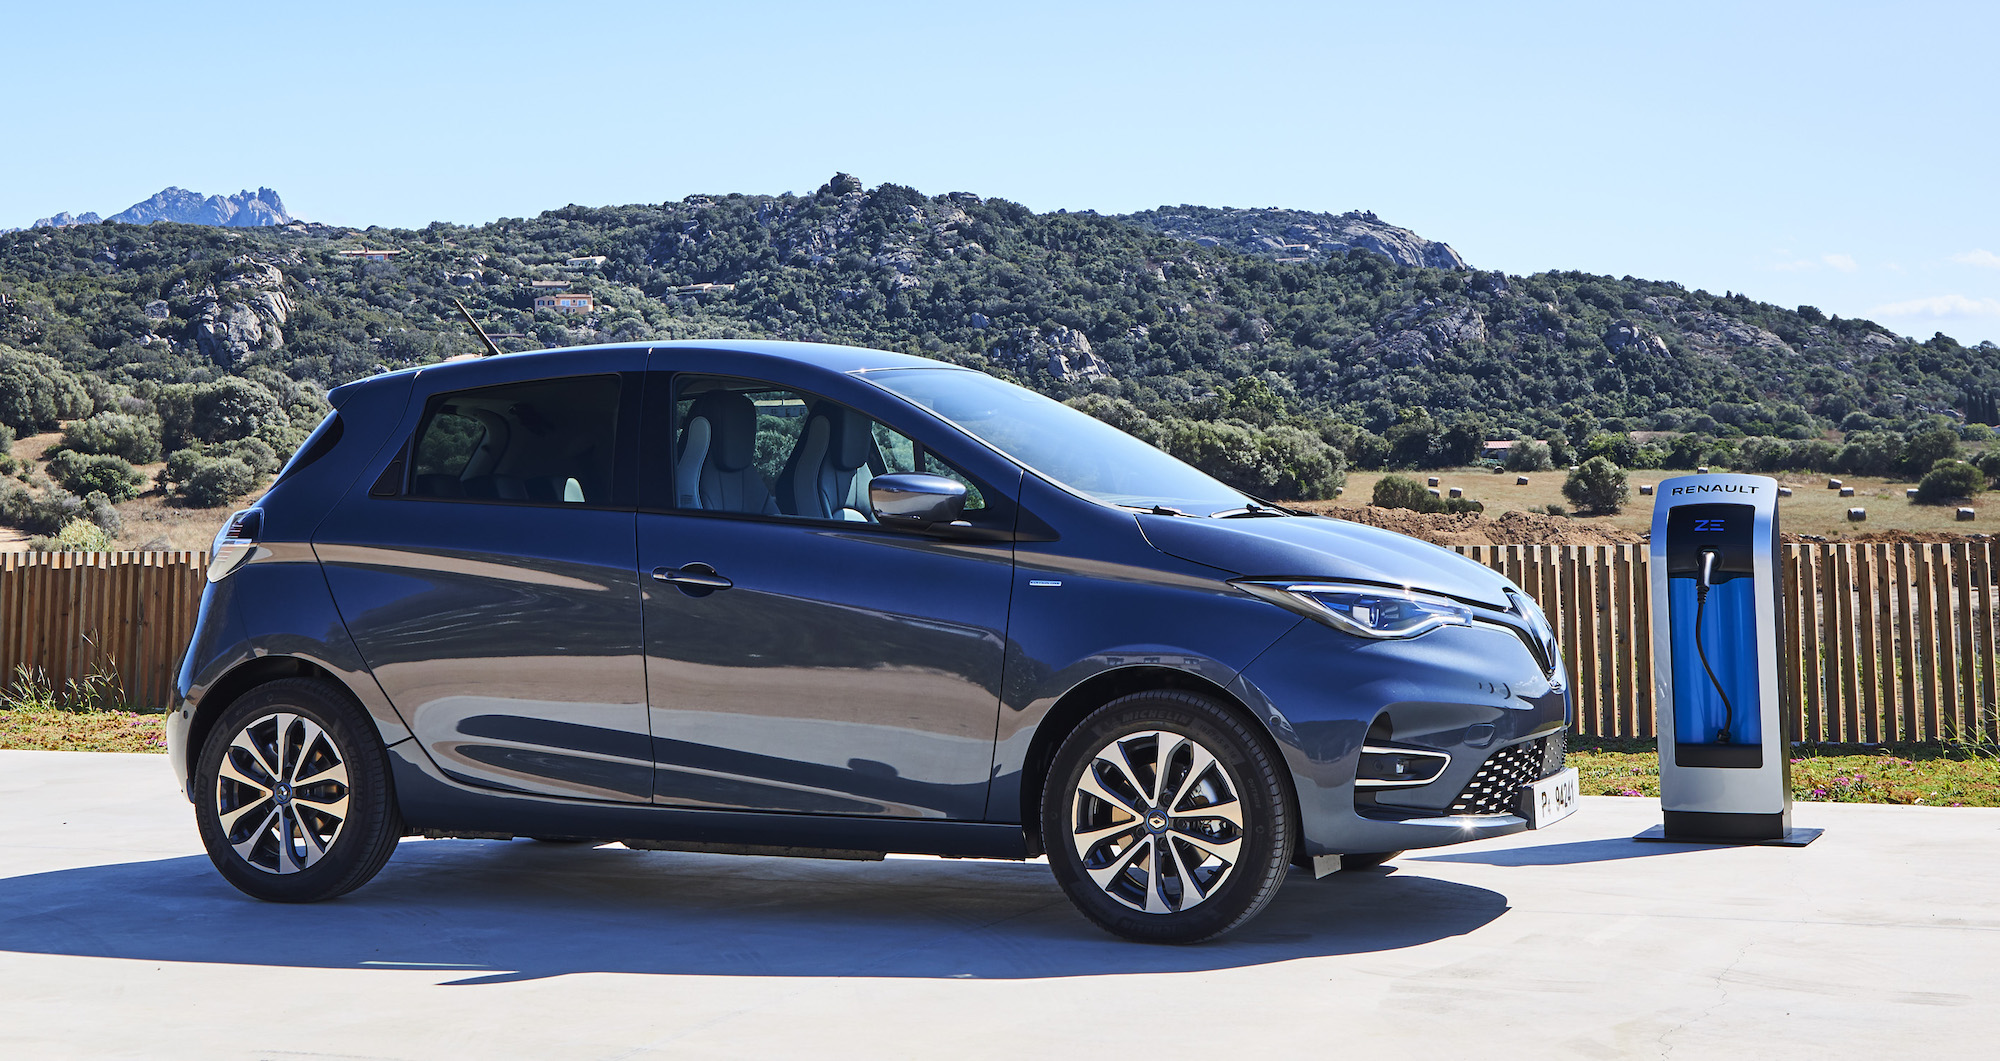 Renault Zoe electric car sales surge, becoming one of the brand's best-selling cars - Electrek